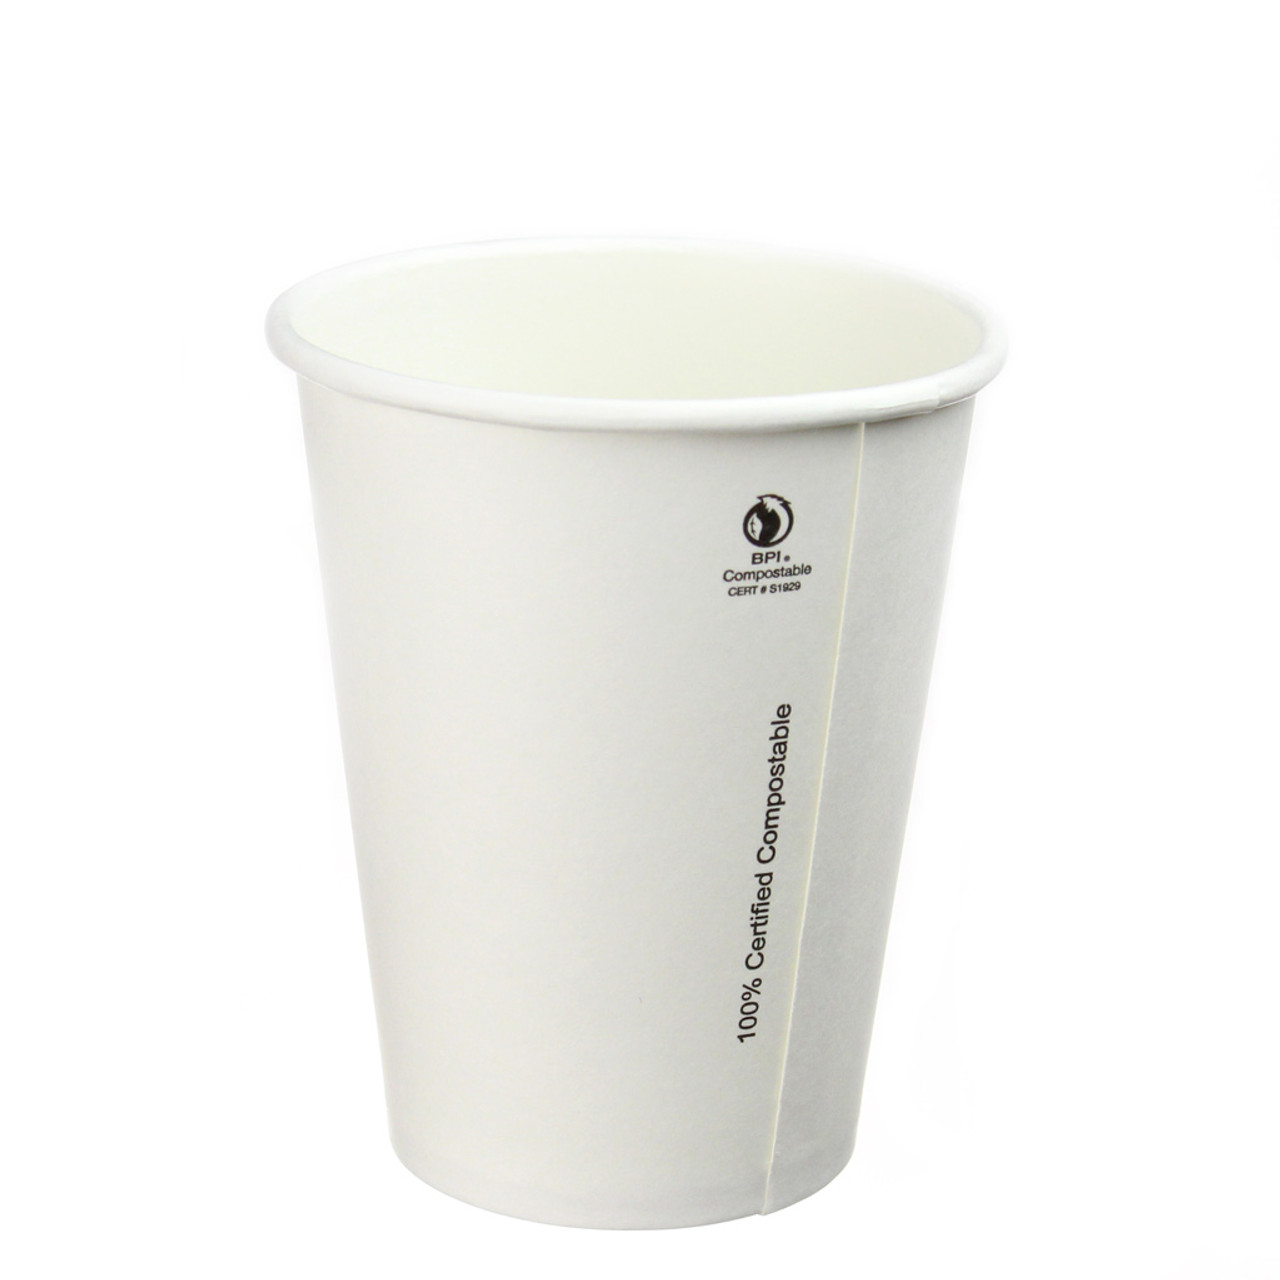 8oz Plain White Compostable Hot Cup